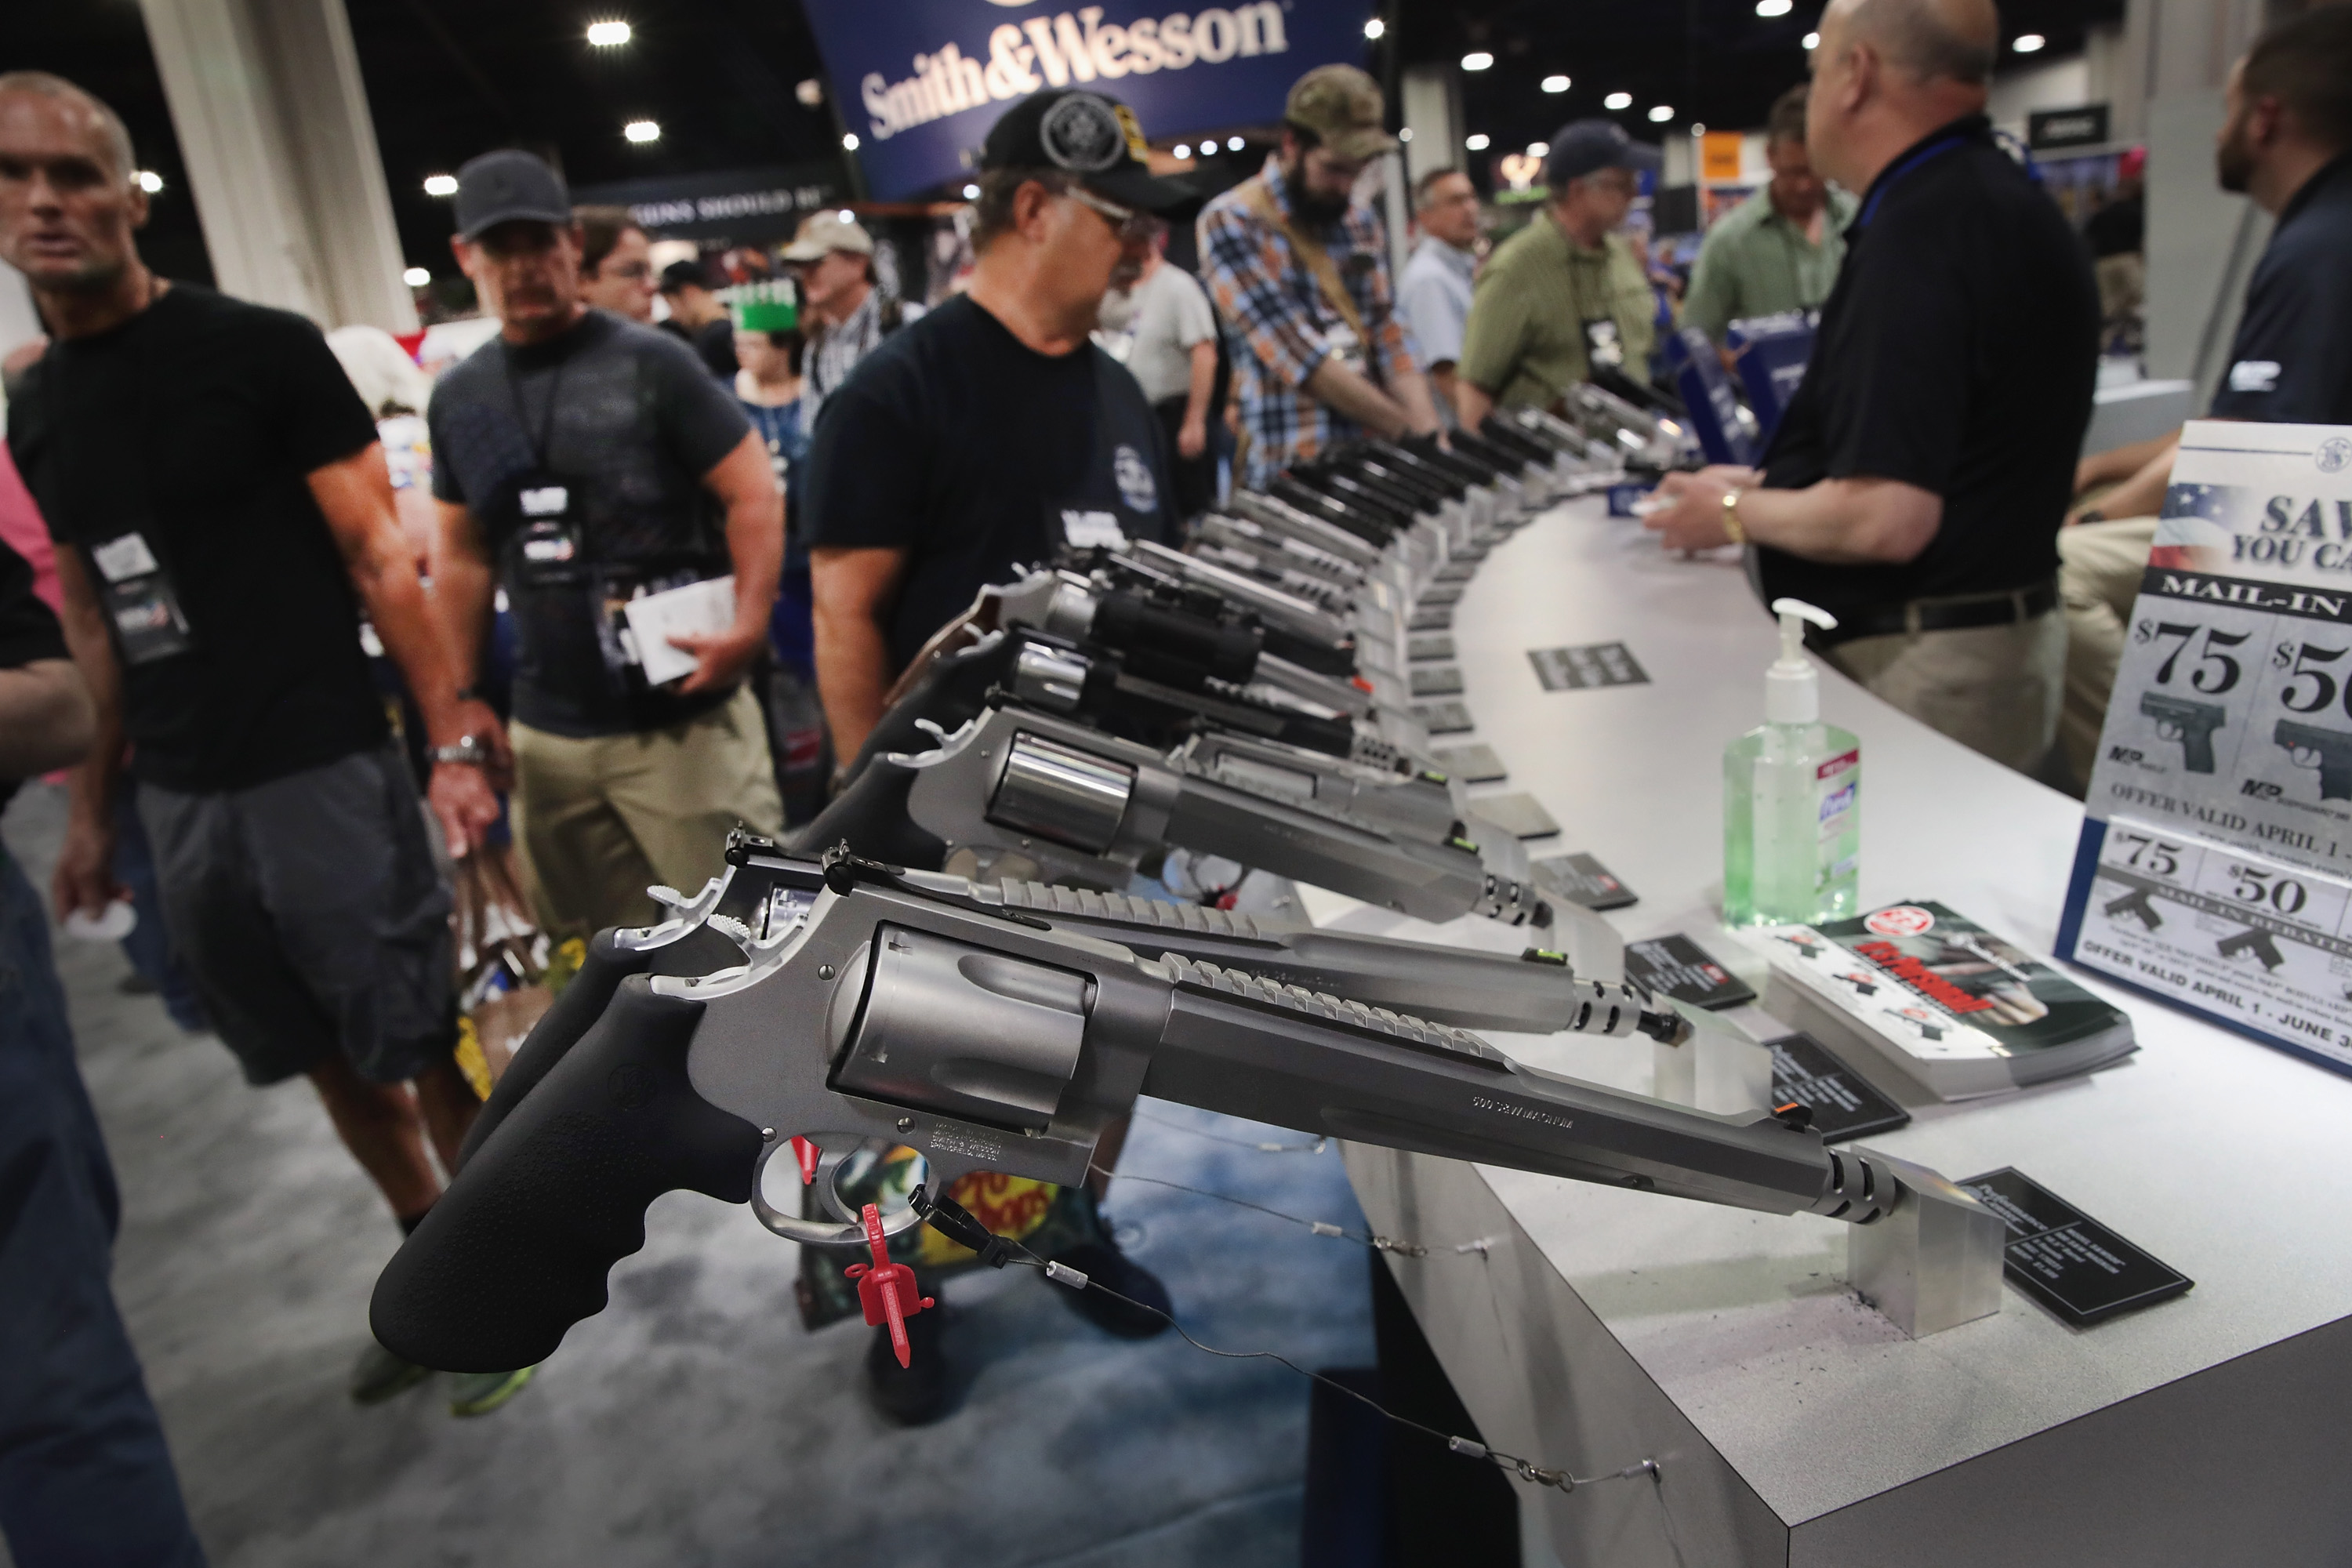 NRA Celebrates Firearms at Annual Meeting In Atlanta